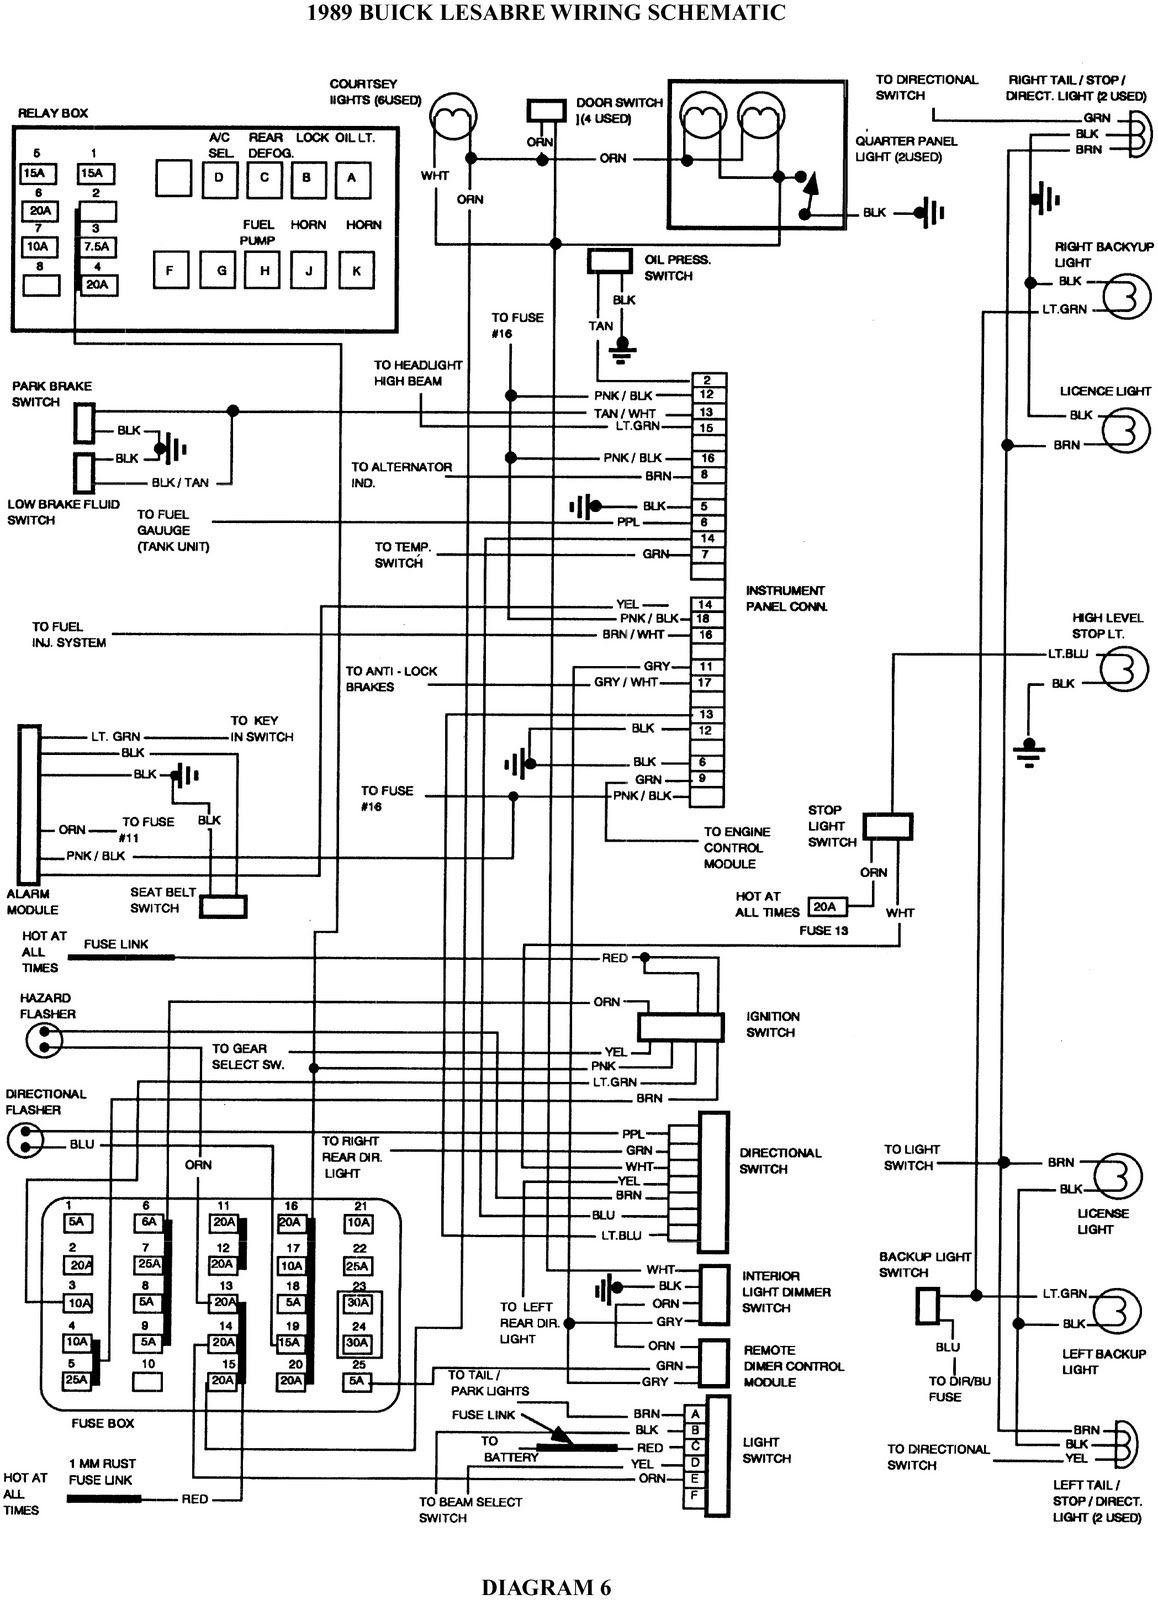 55 Fresh Buick Lesabre Radio Wiring Diagram In